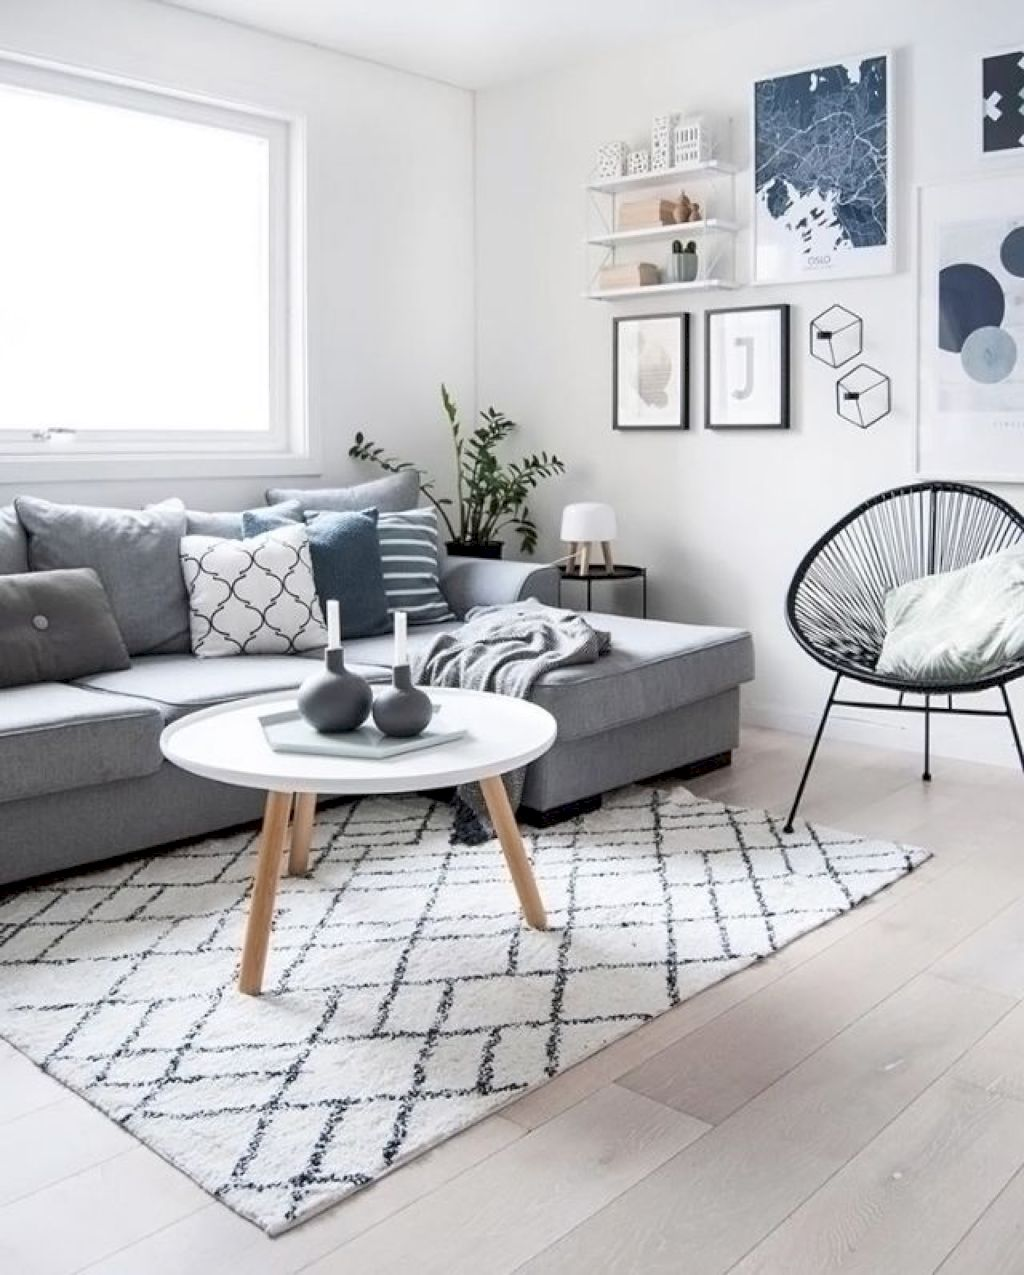 Living Room Decor Inspiration: Scandinavian Living Room Inspiration